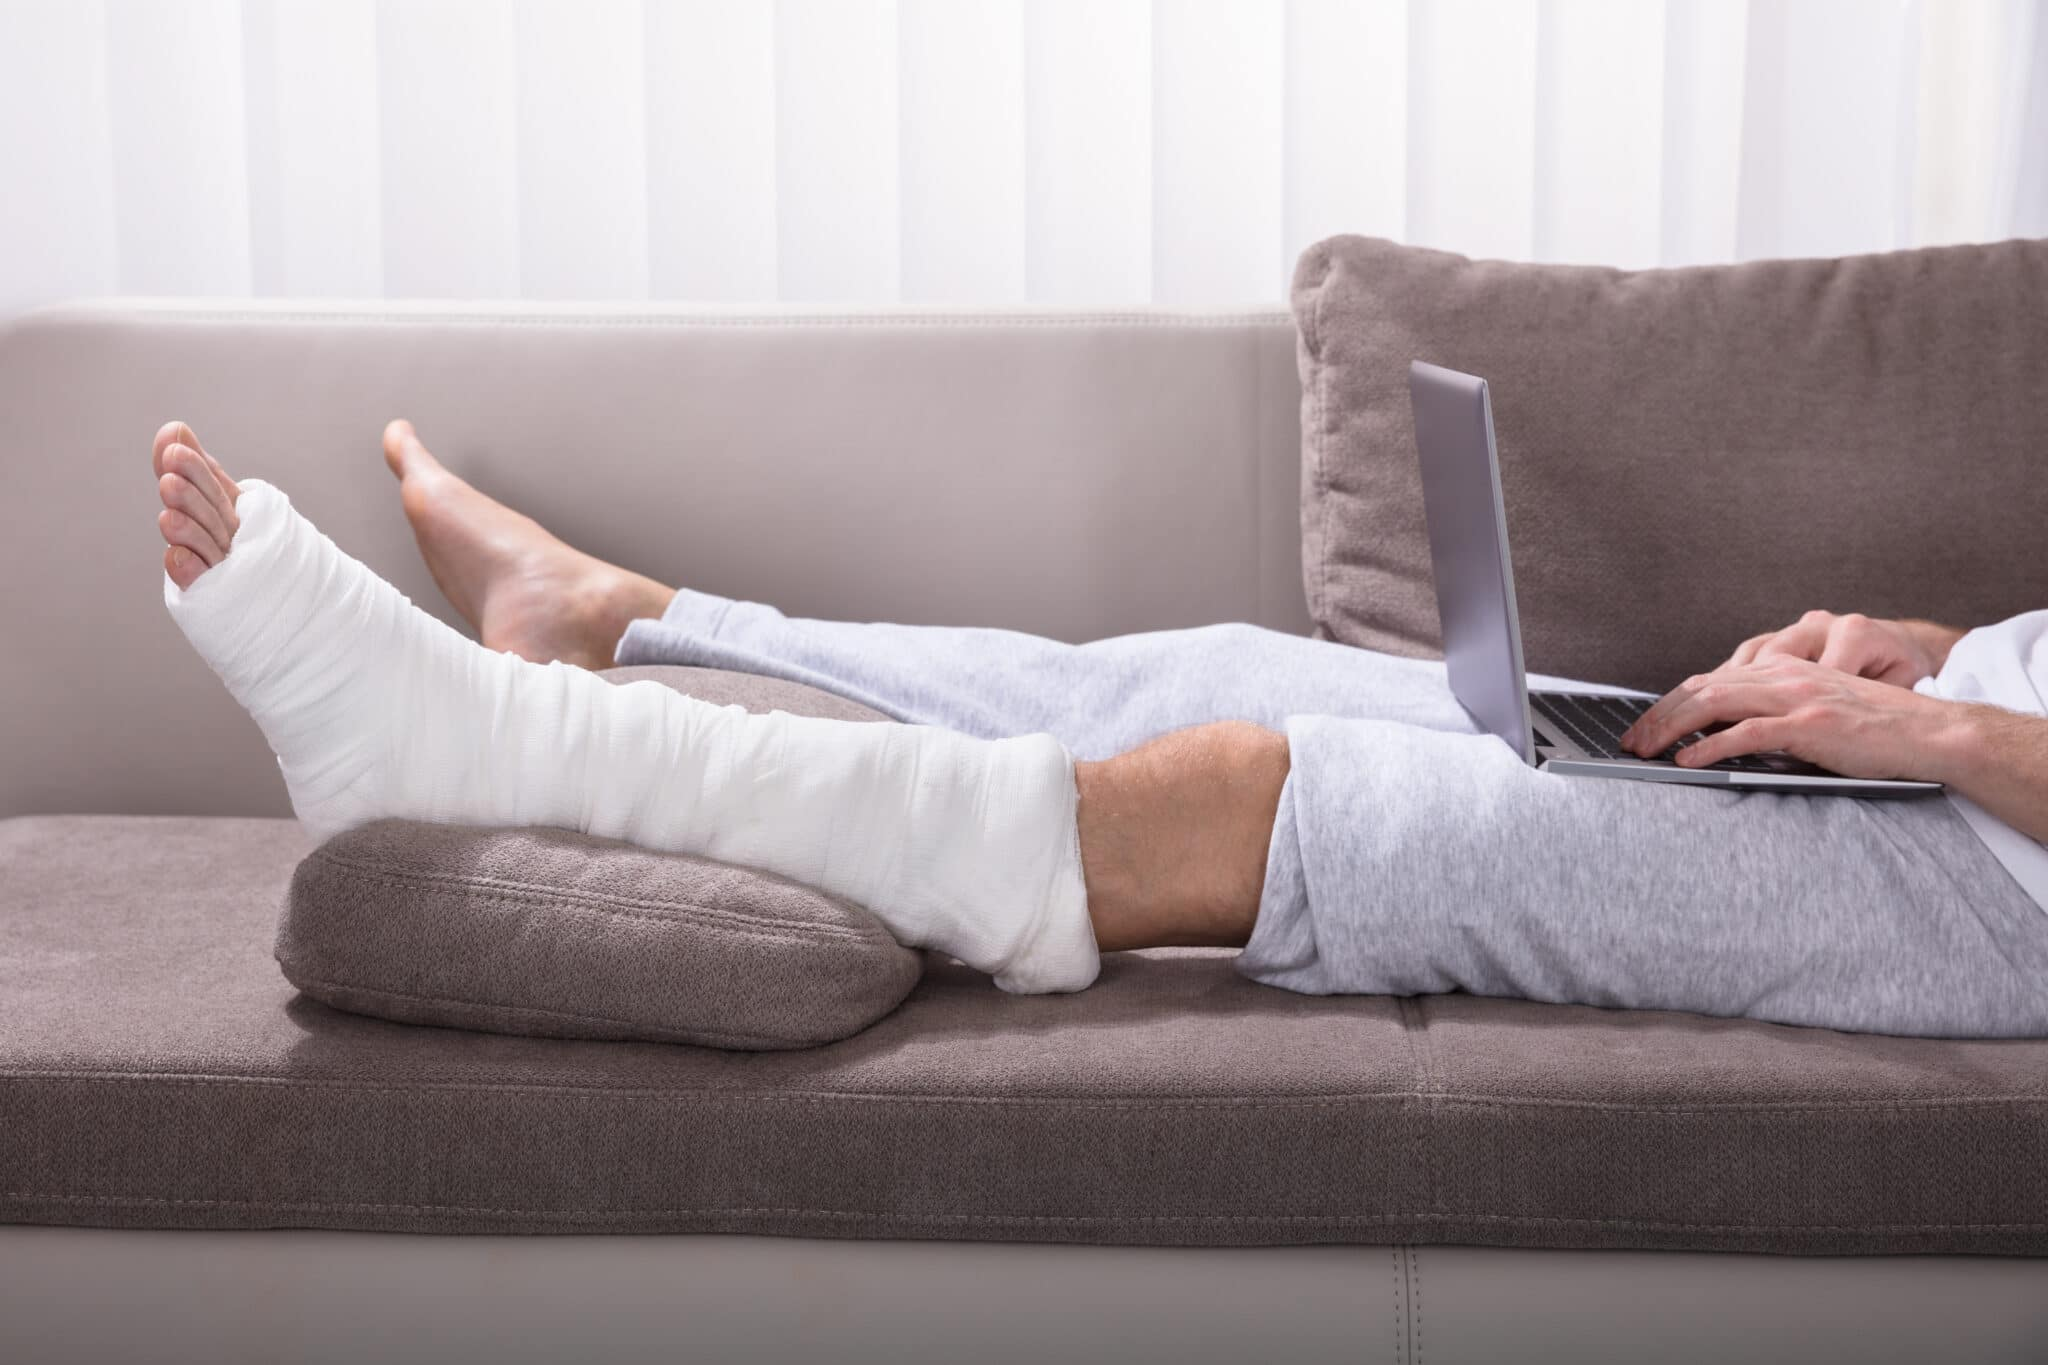 man with leg in cast sitting on sofa with laptop